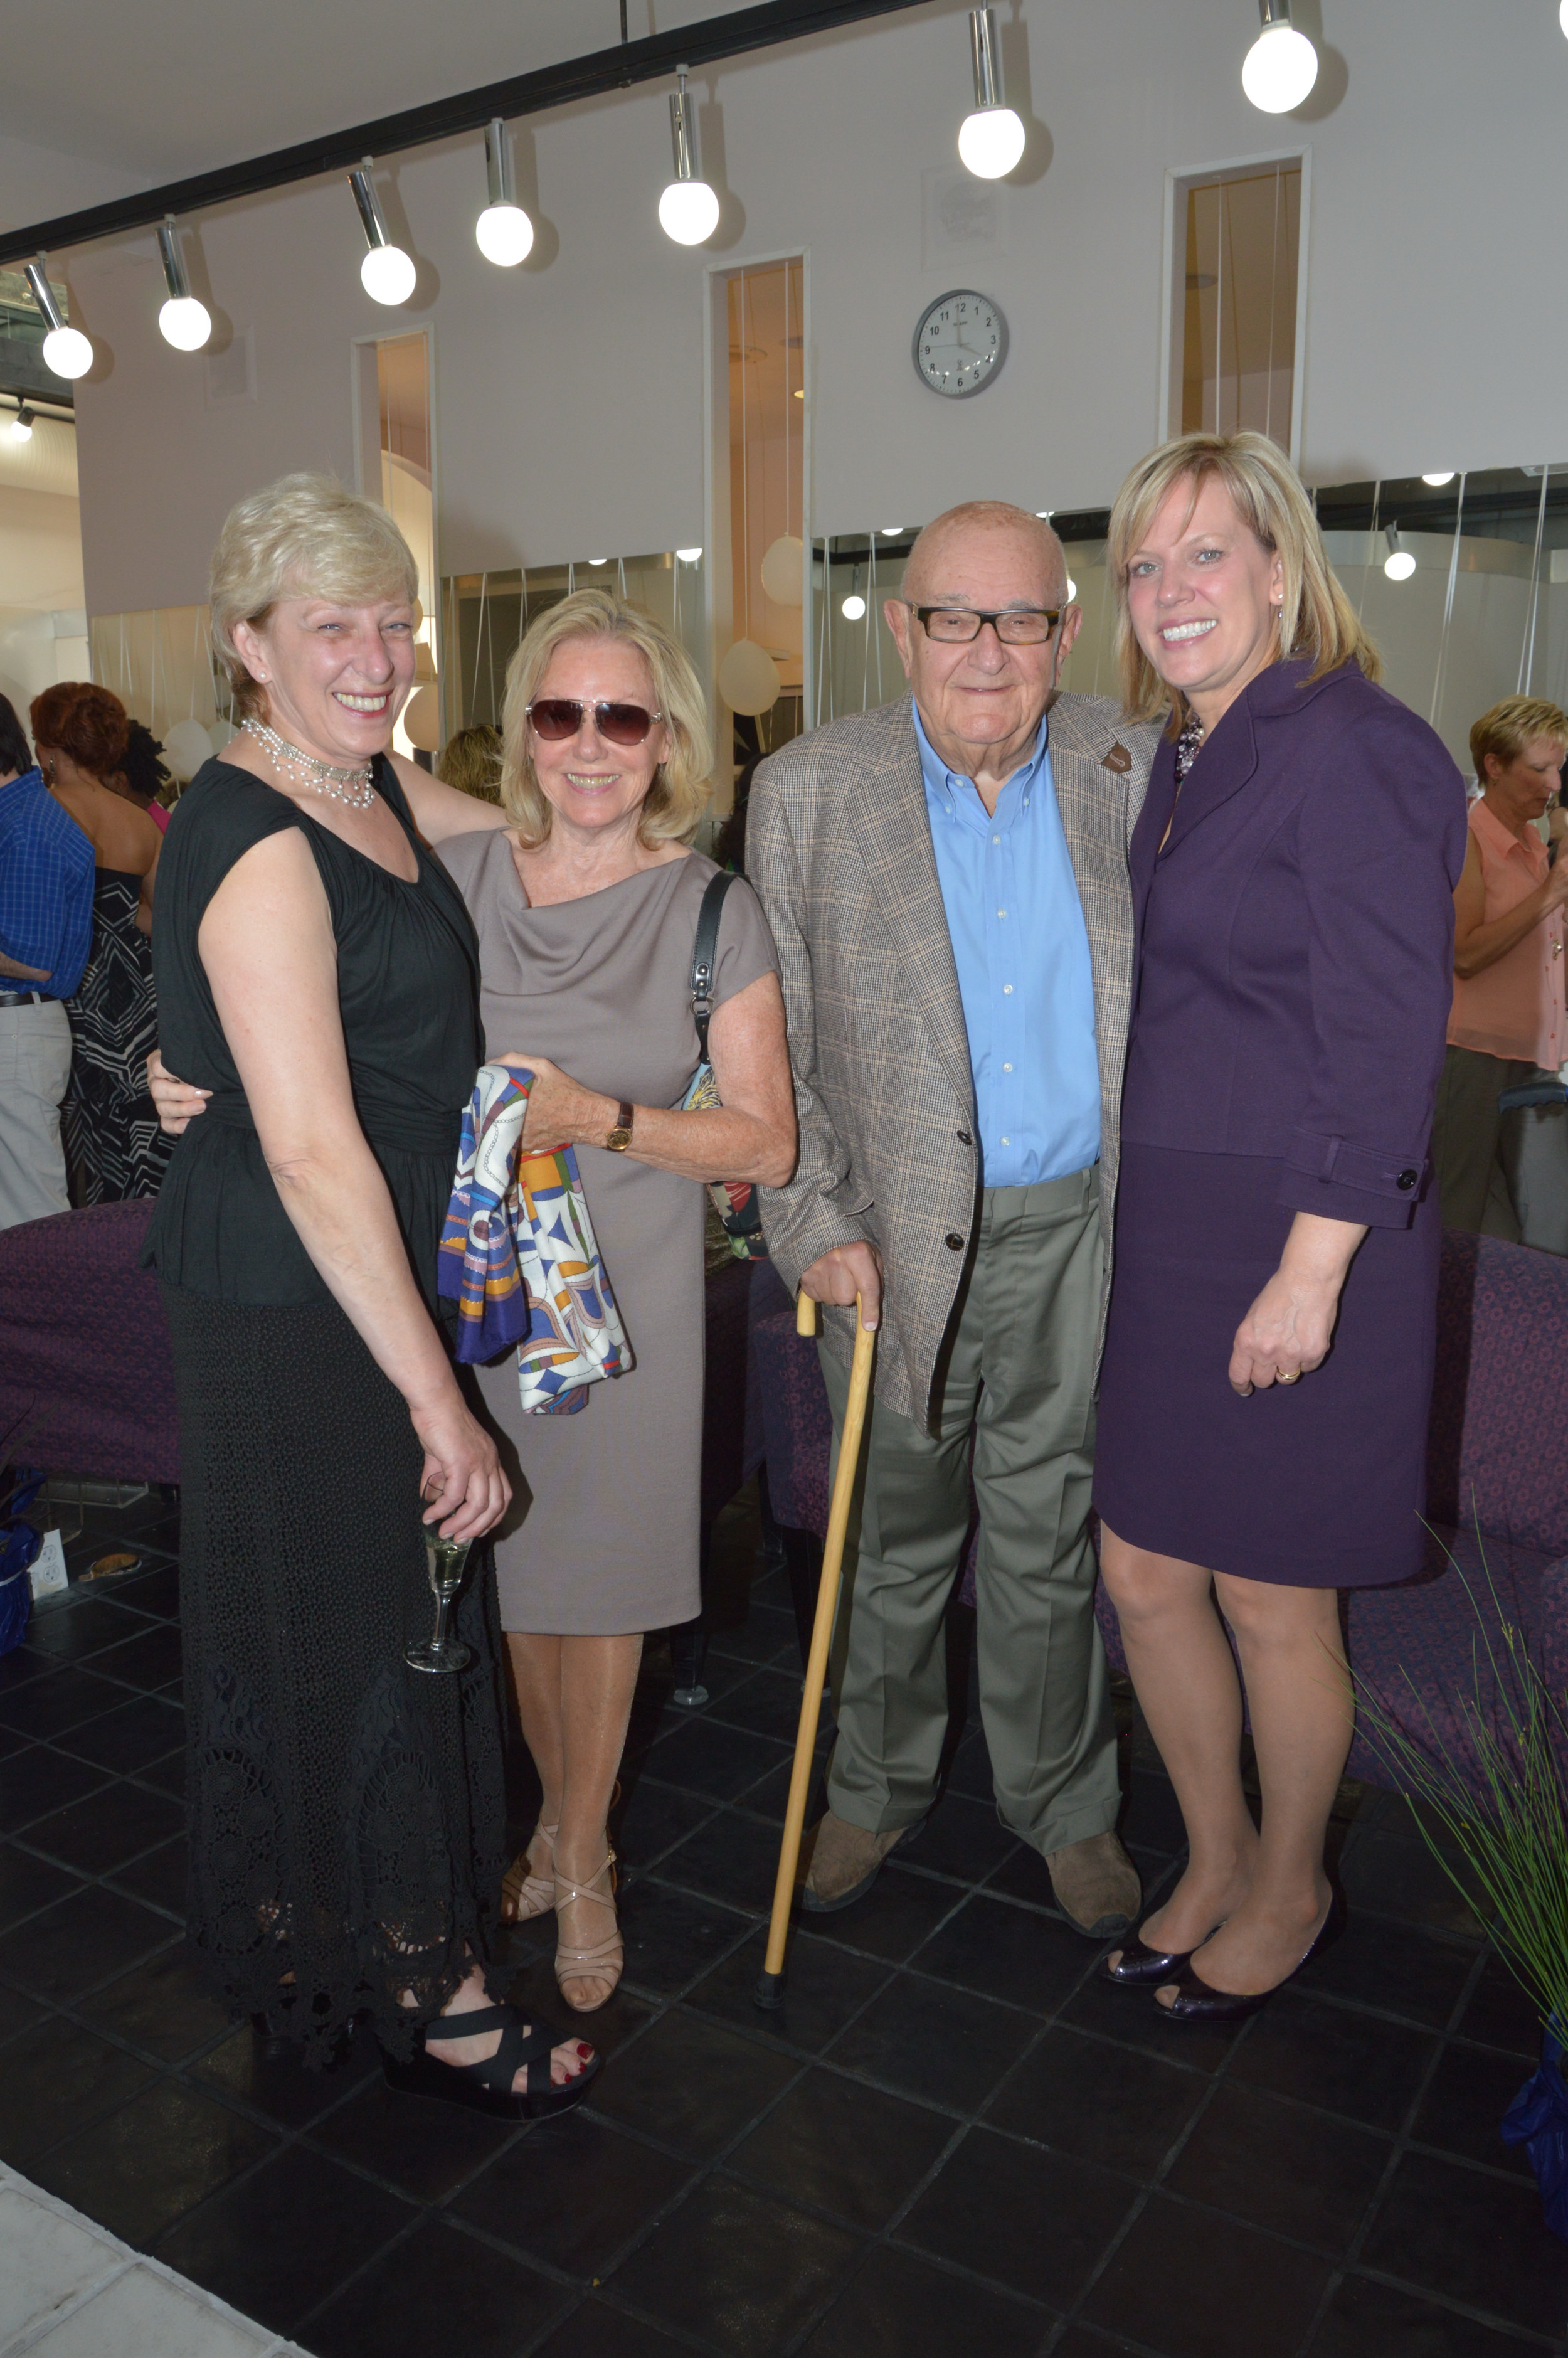 Tomorrows founder Anci Brennan with Pat and Louis Fodor from Lakewood and Rocky River Mayor Pam Bobst